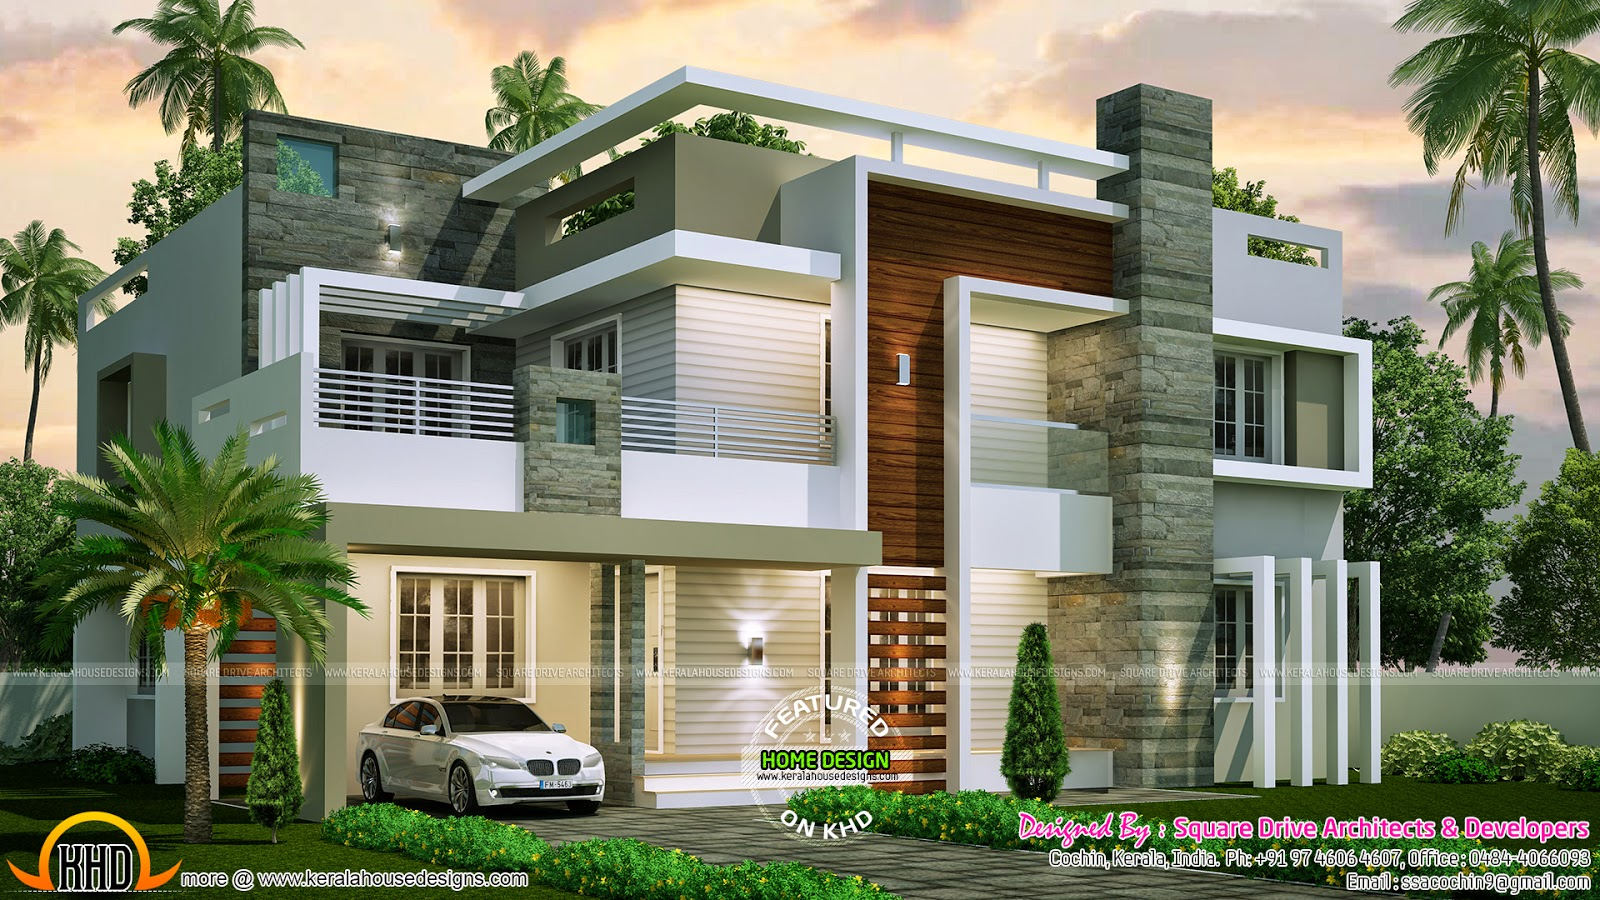 4 bedroom contemporary home design kerala home design for Contemporary building plans